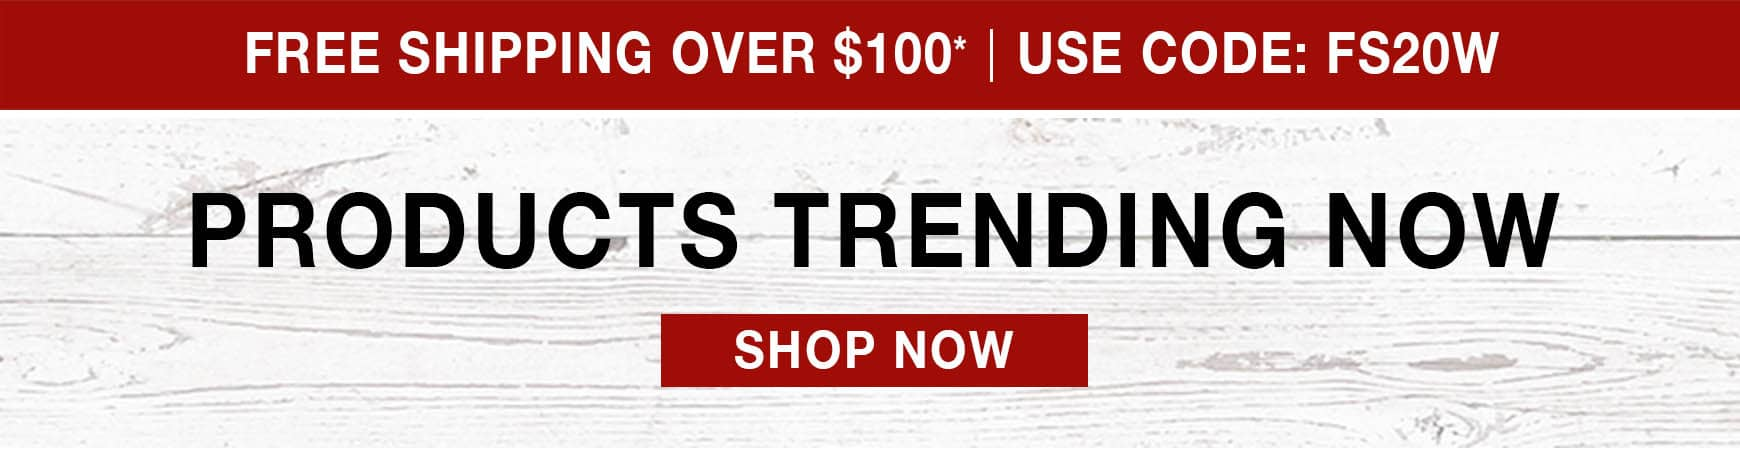 Products Trending Now - Free Shipping over $100 use code FS20W